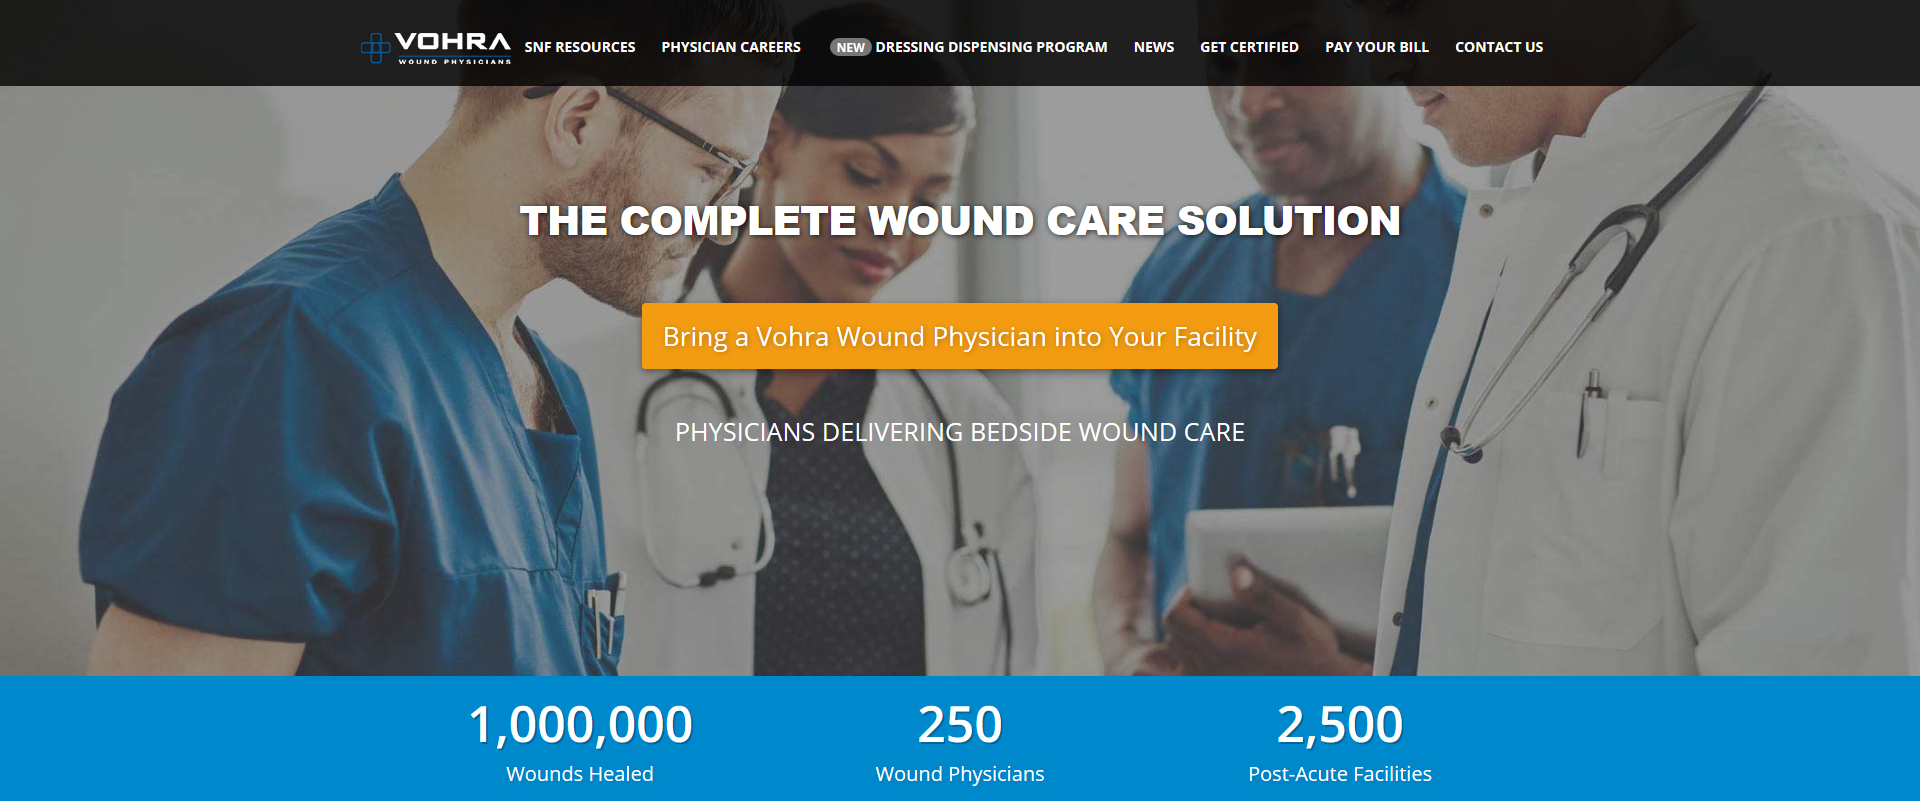 Vohra - A Physicians website